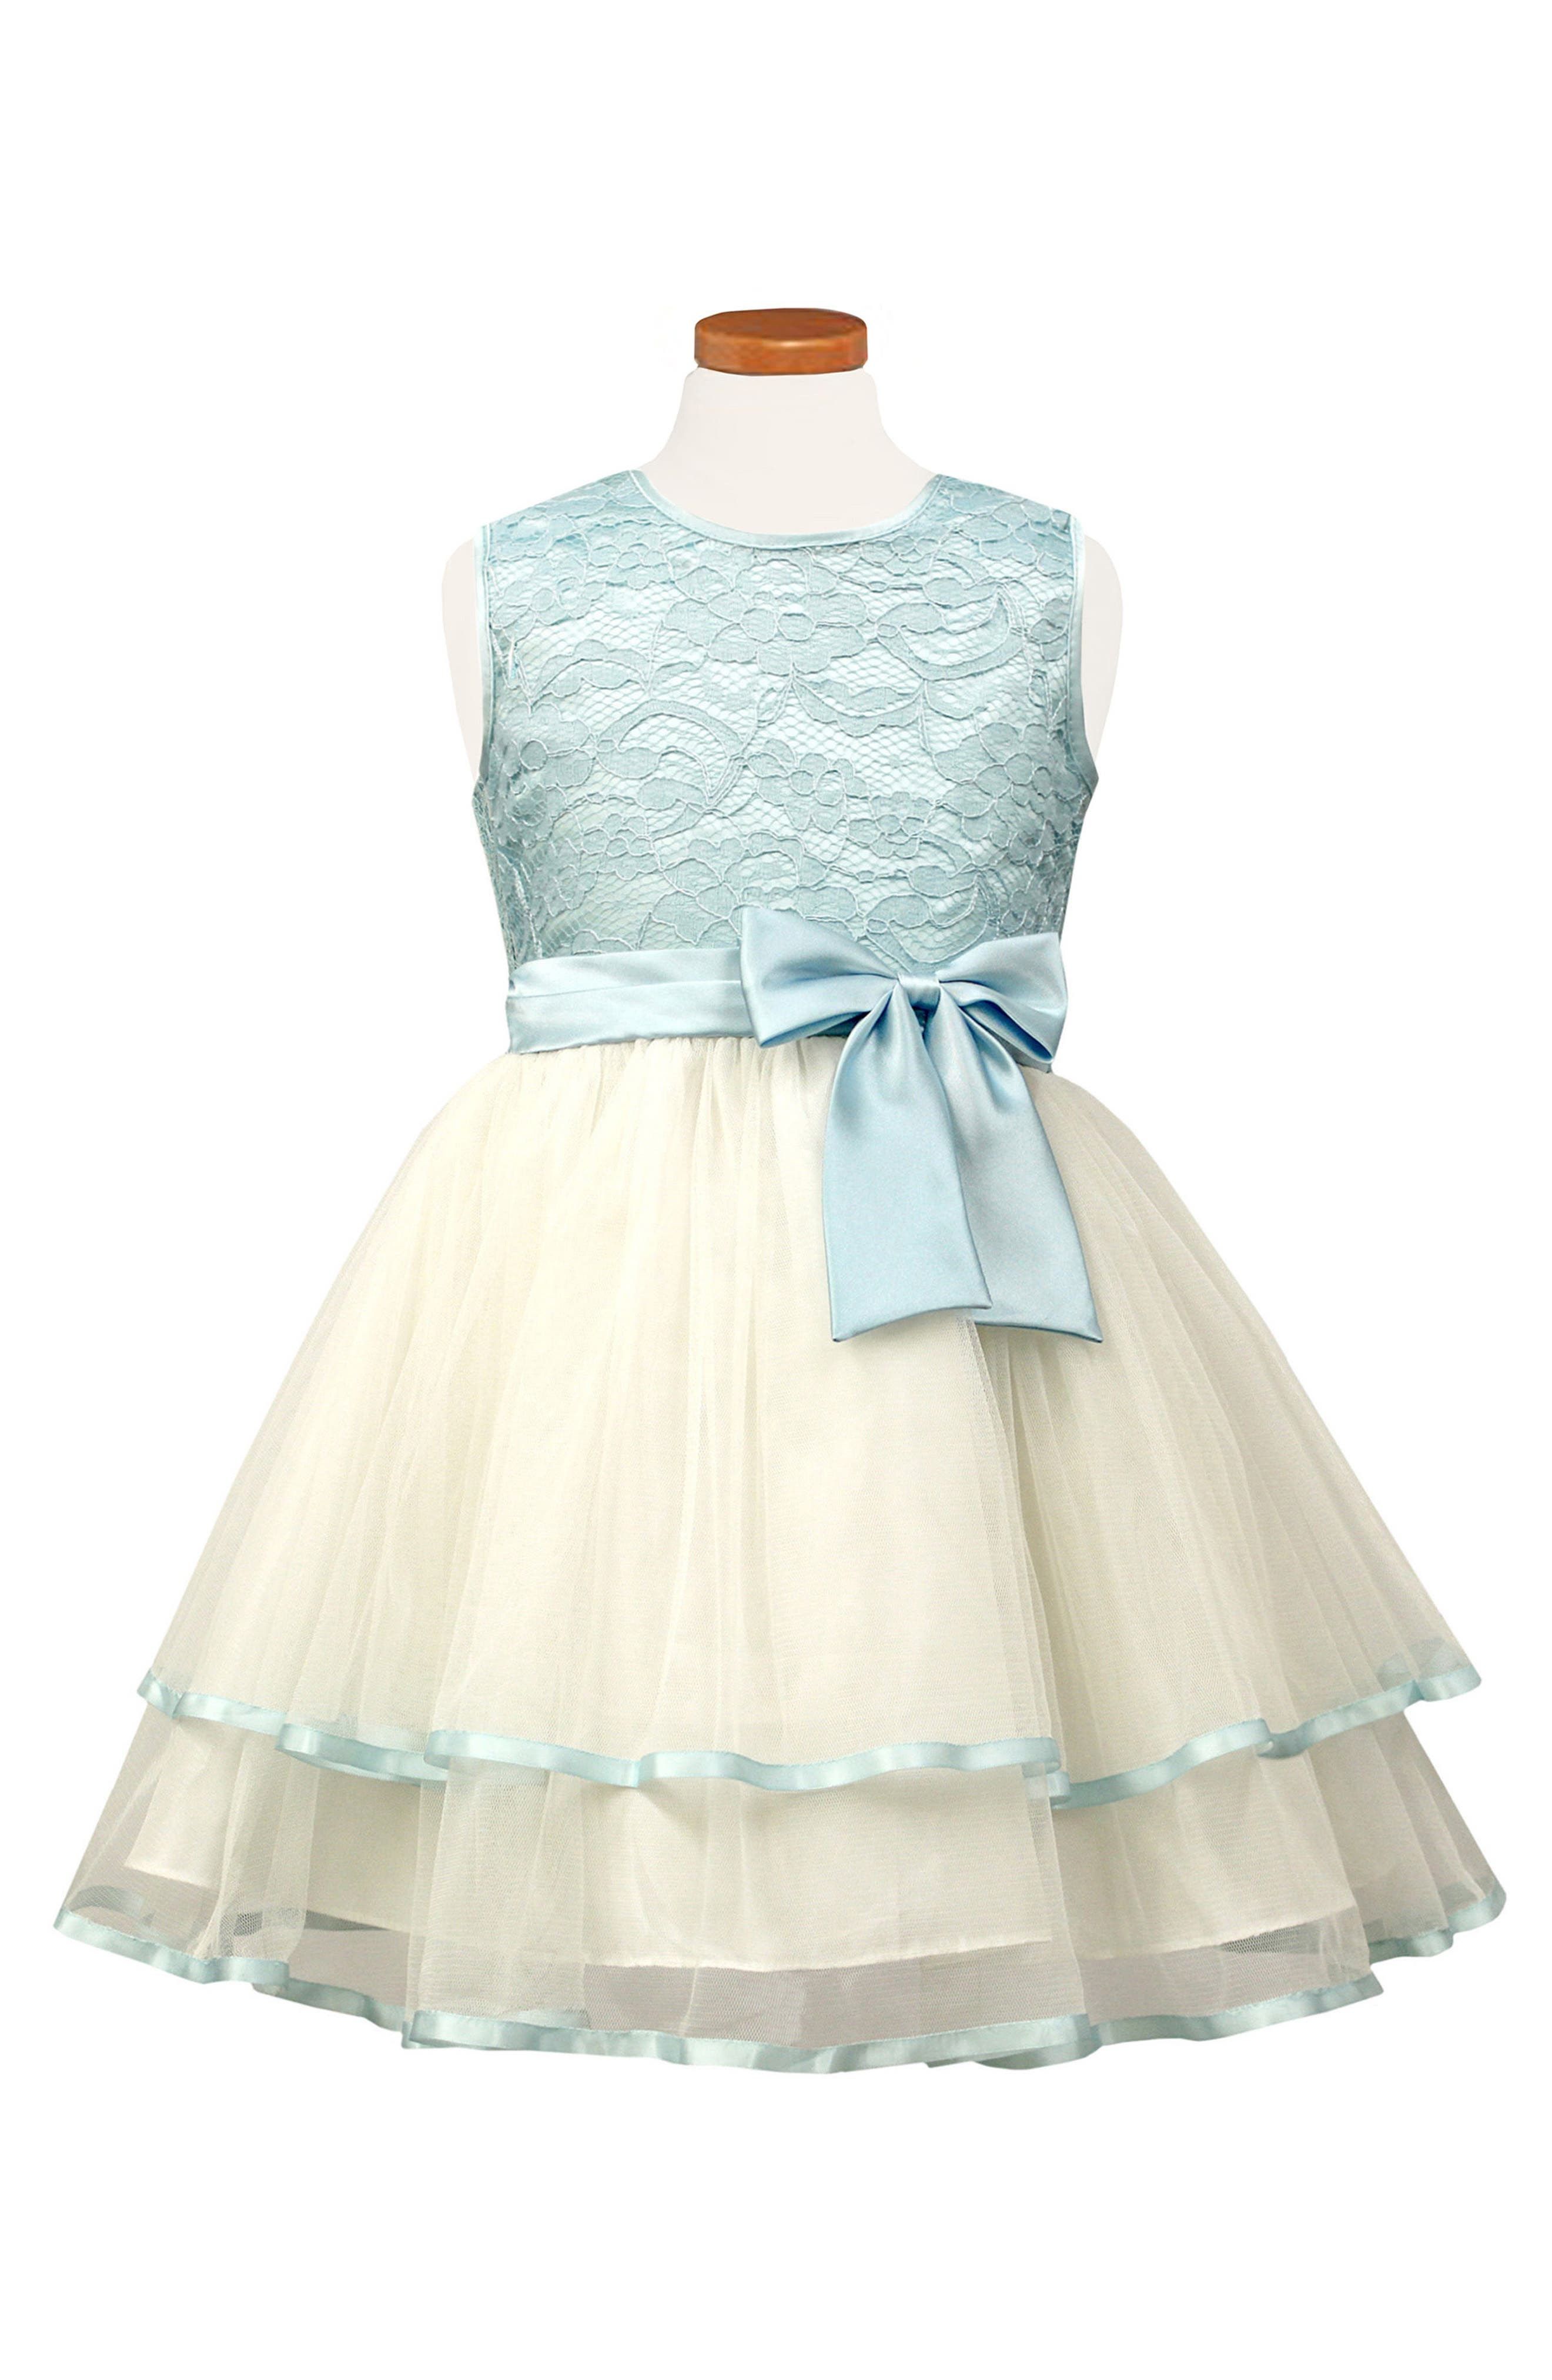 Main Image - Sorbet Tiered Lace & Tulle Dress (Toddler Girls & Little Girls)